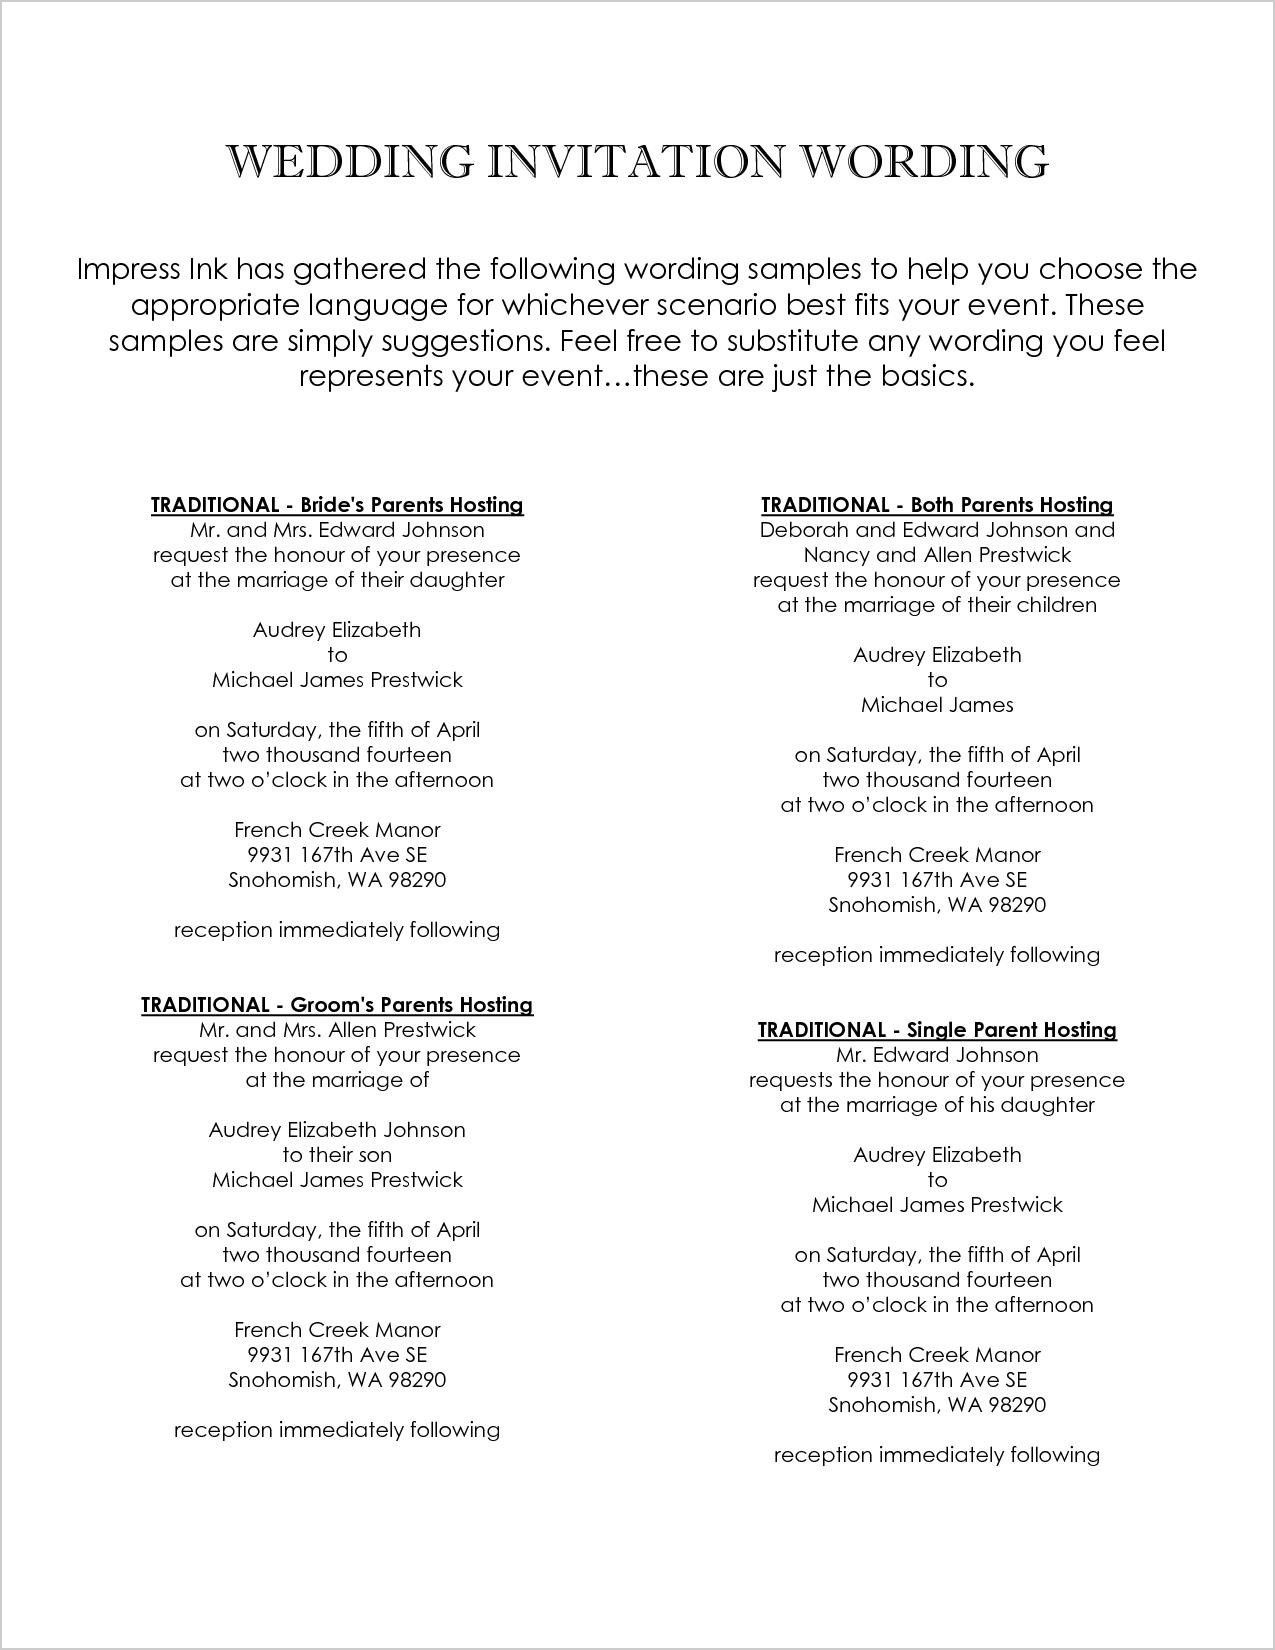 funny wedding invitation wording Funny Wedding Invitation Wording